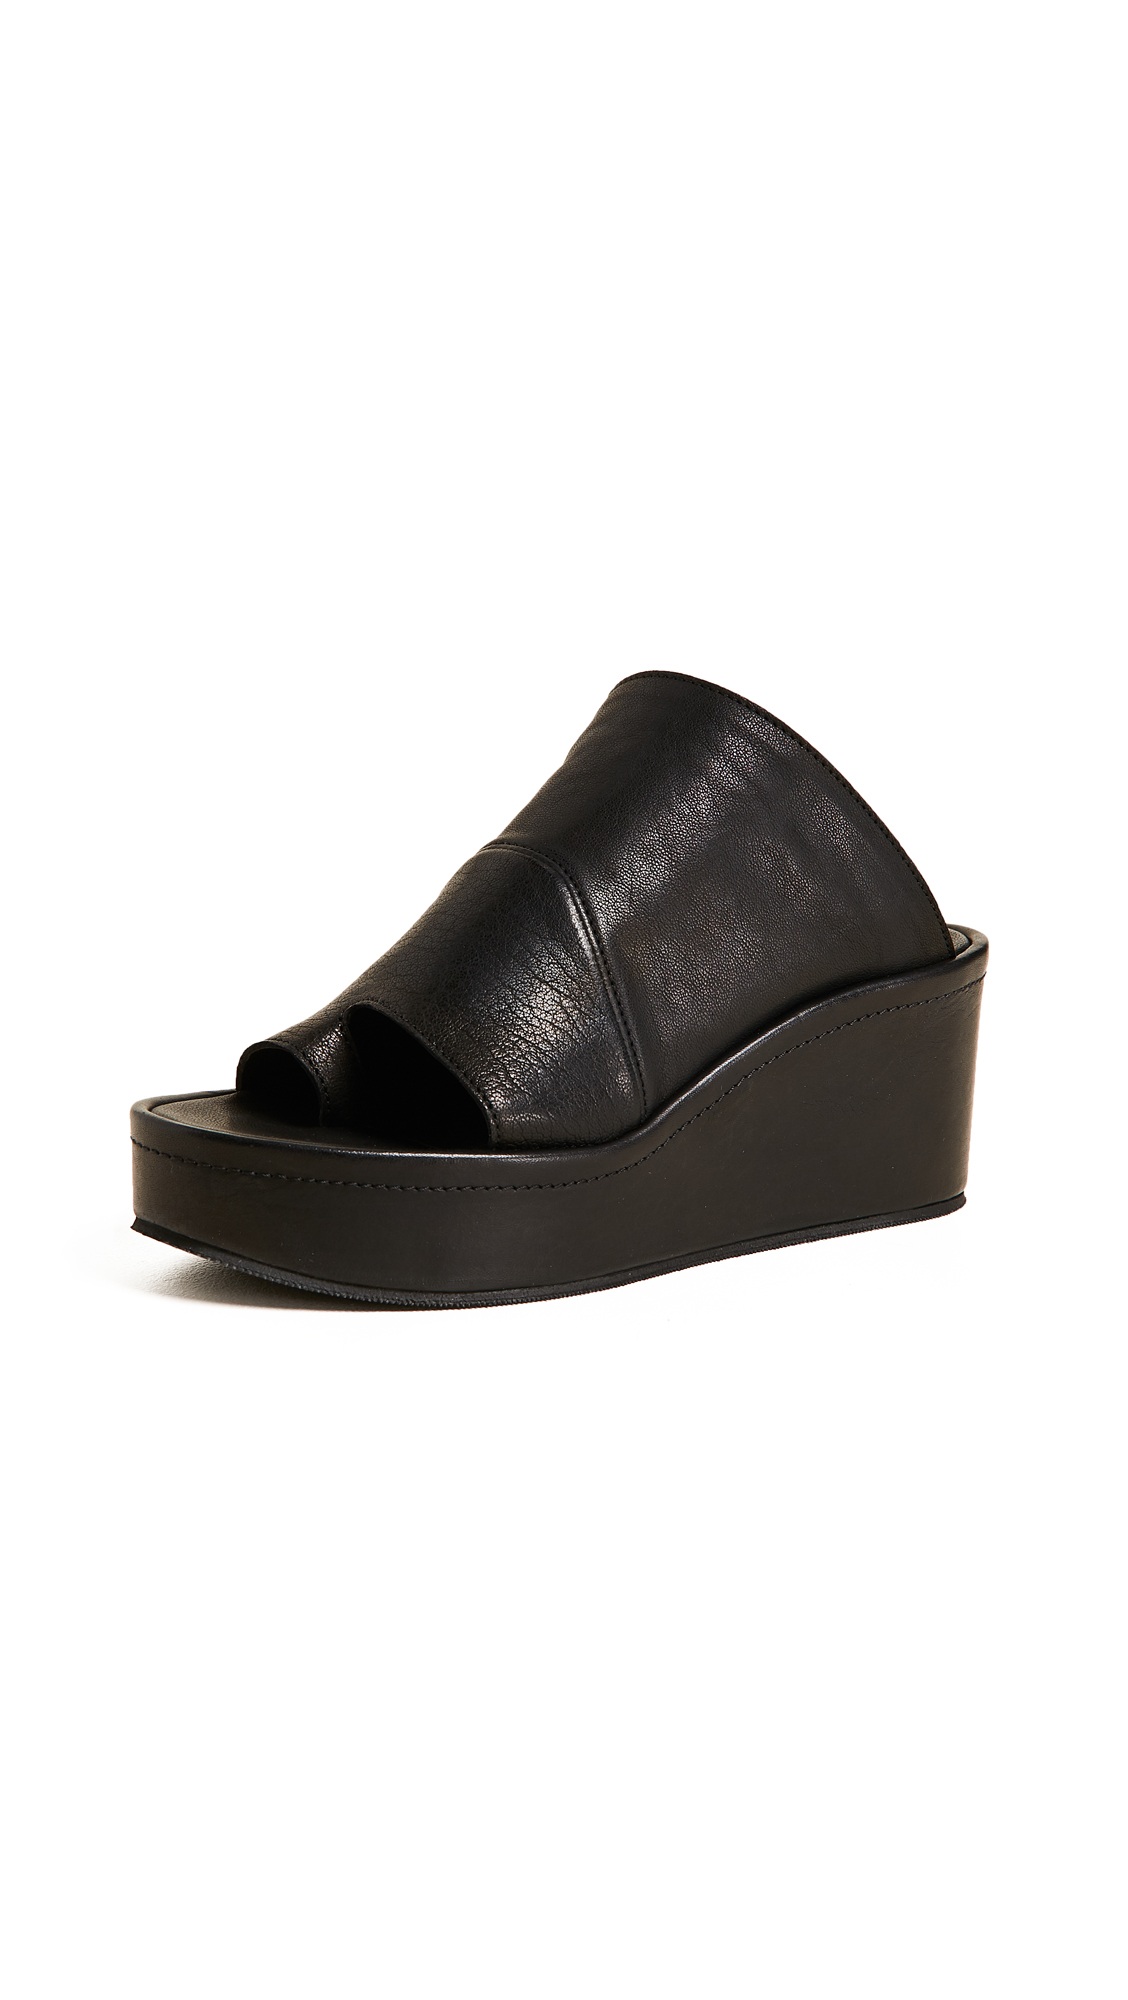 LD Tuttle The After Platform Slides - Black